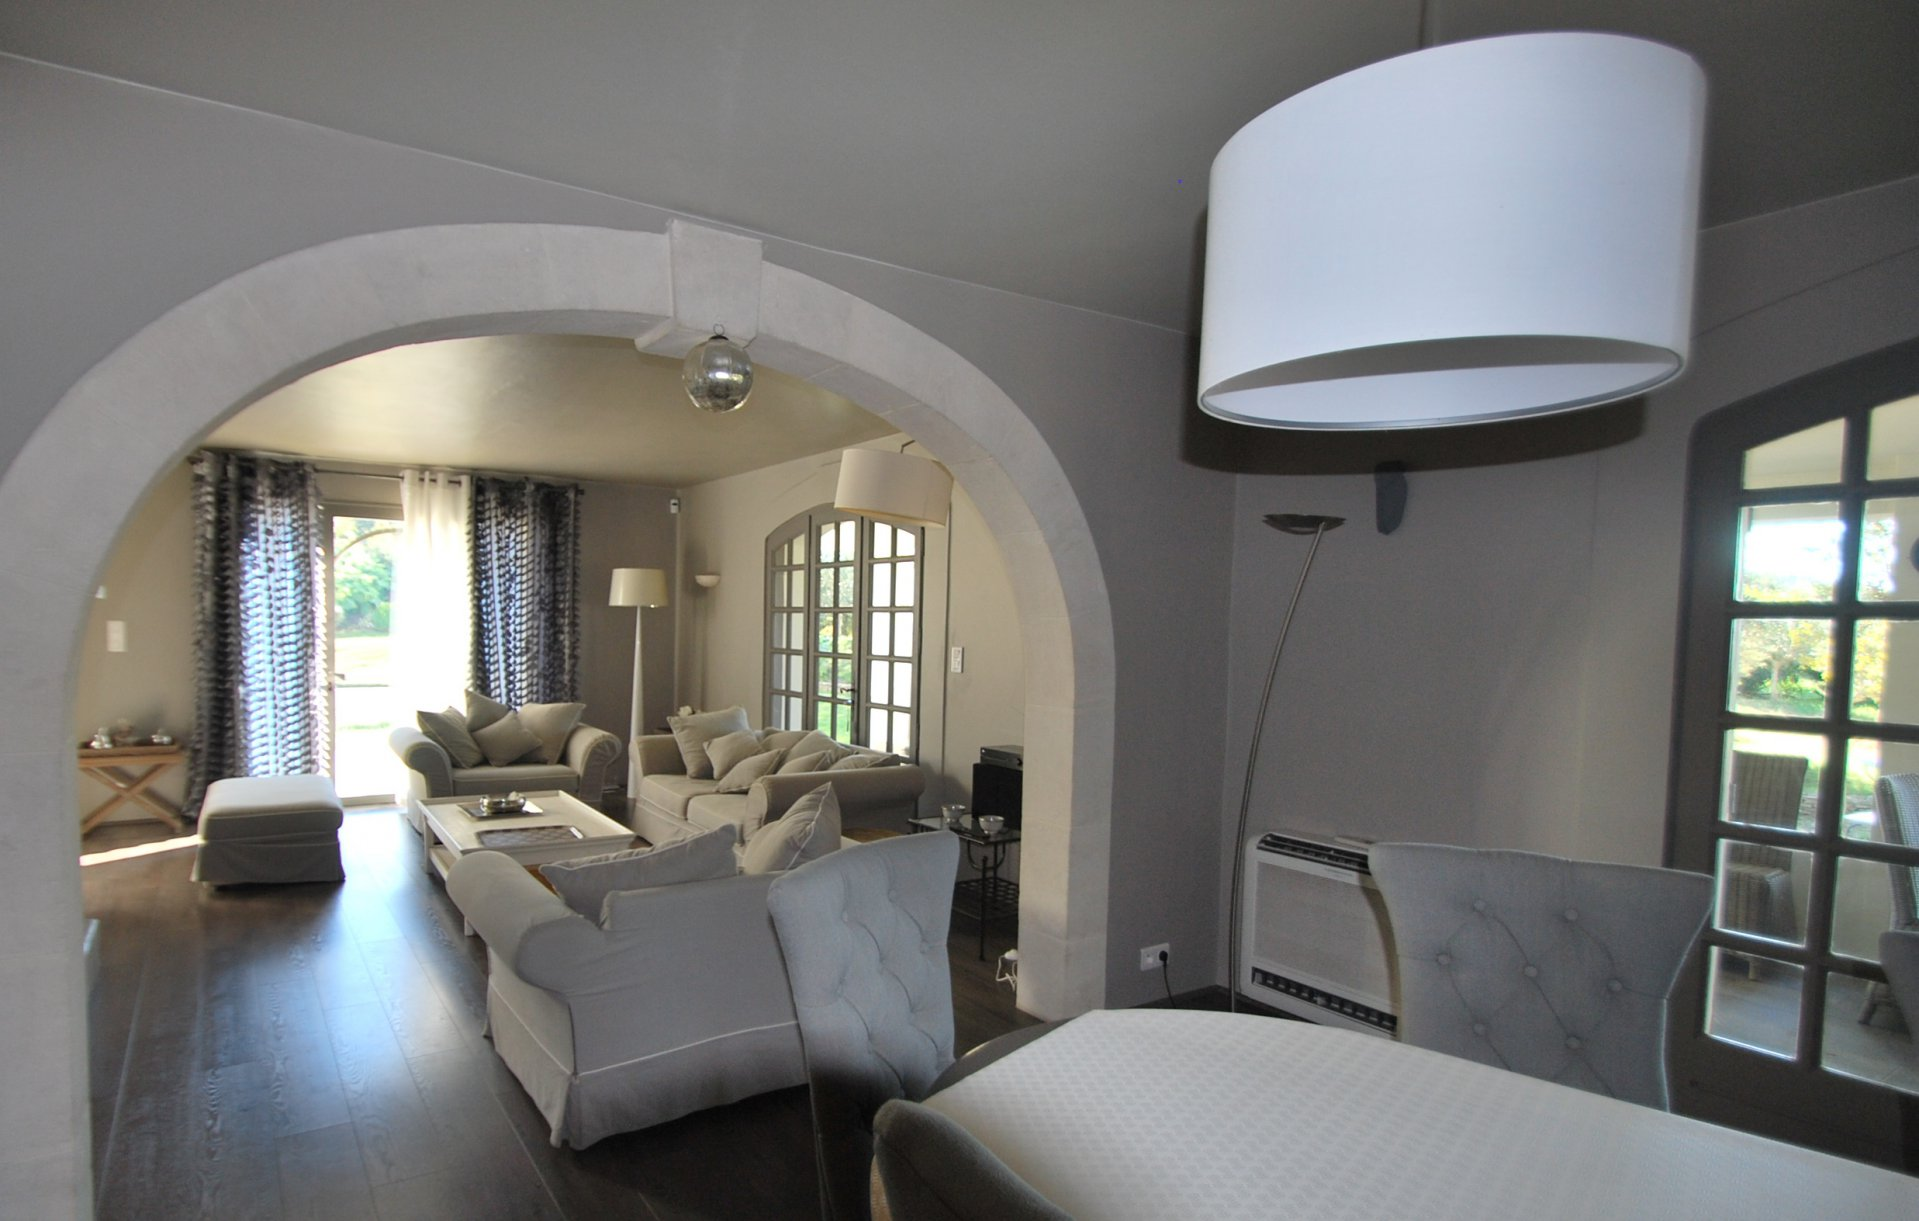 5 bedroom villa for sale in Fontvieille